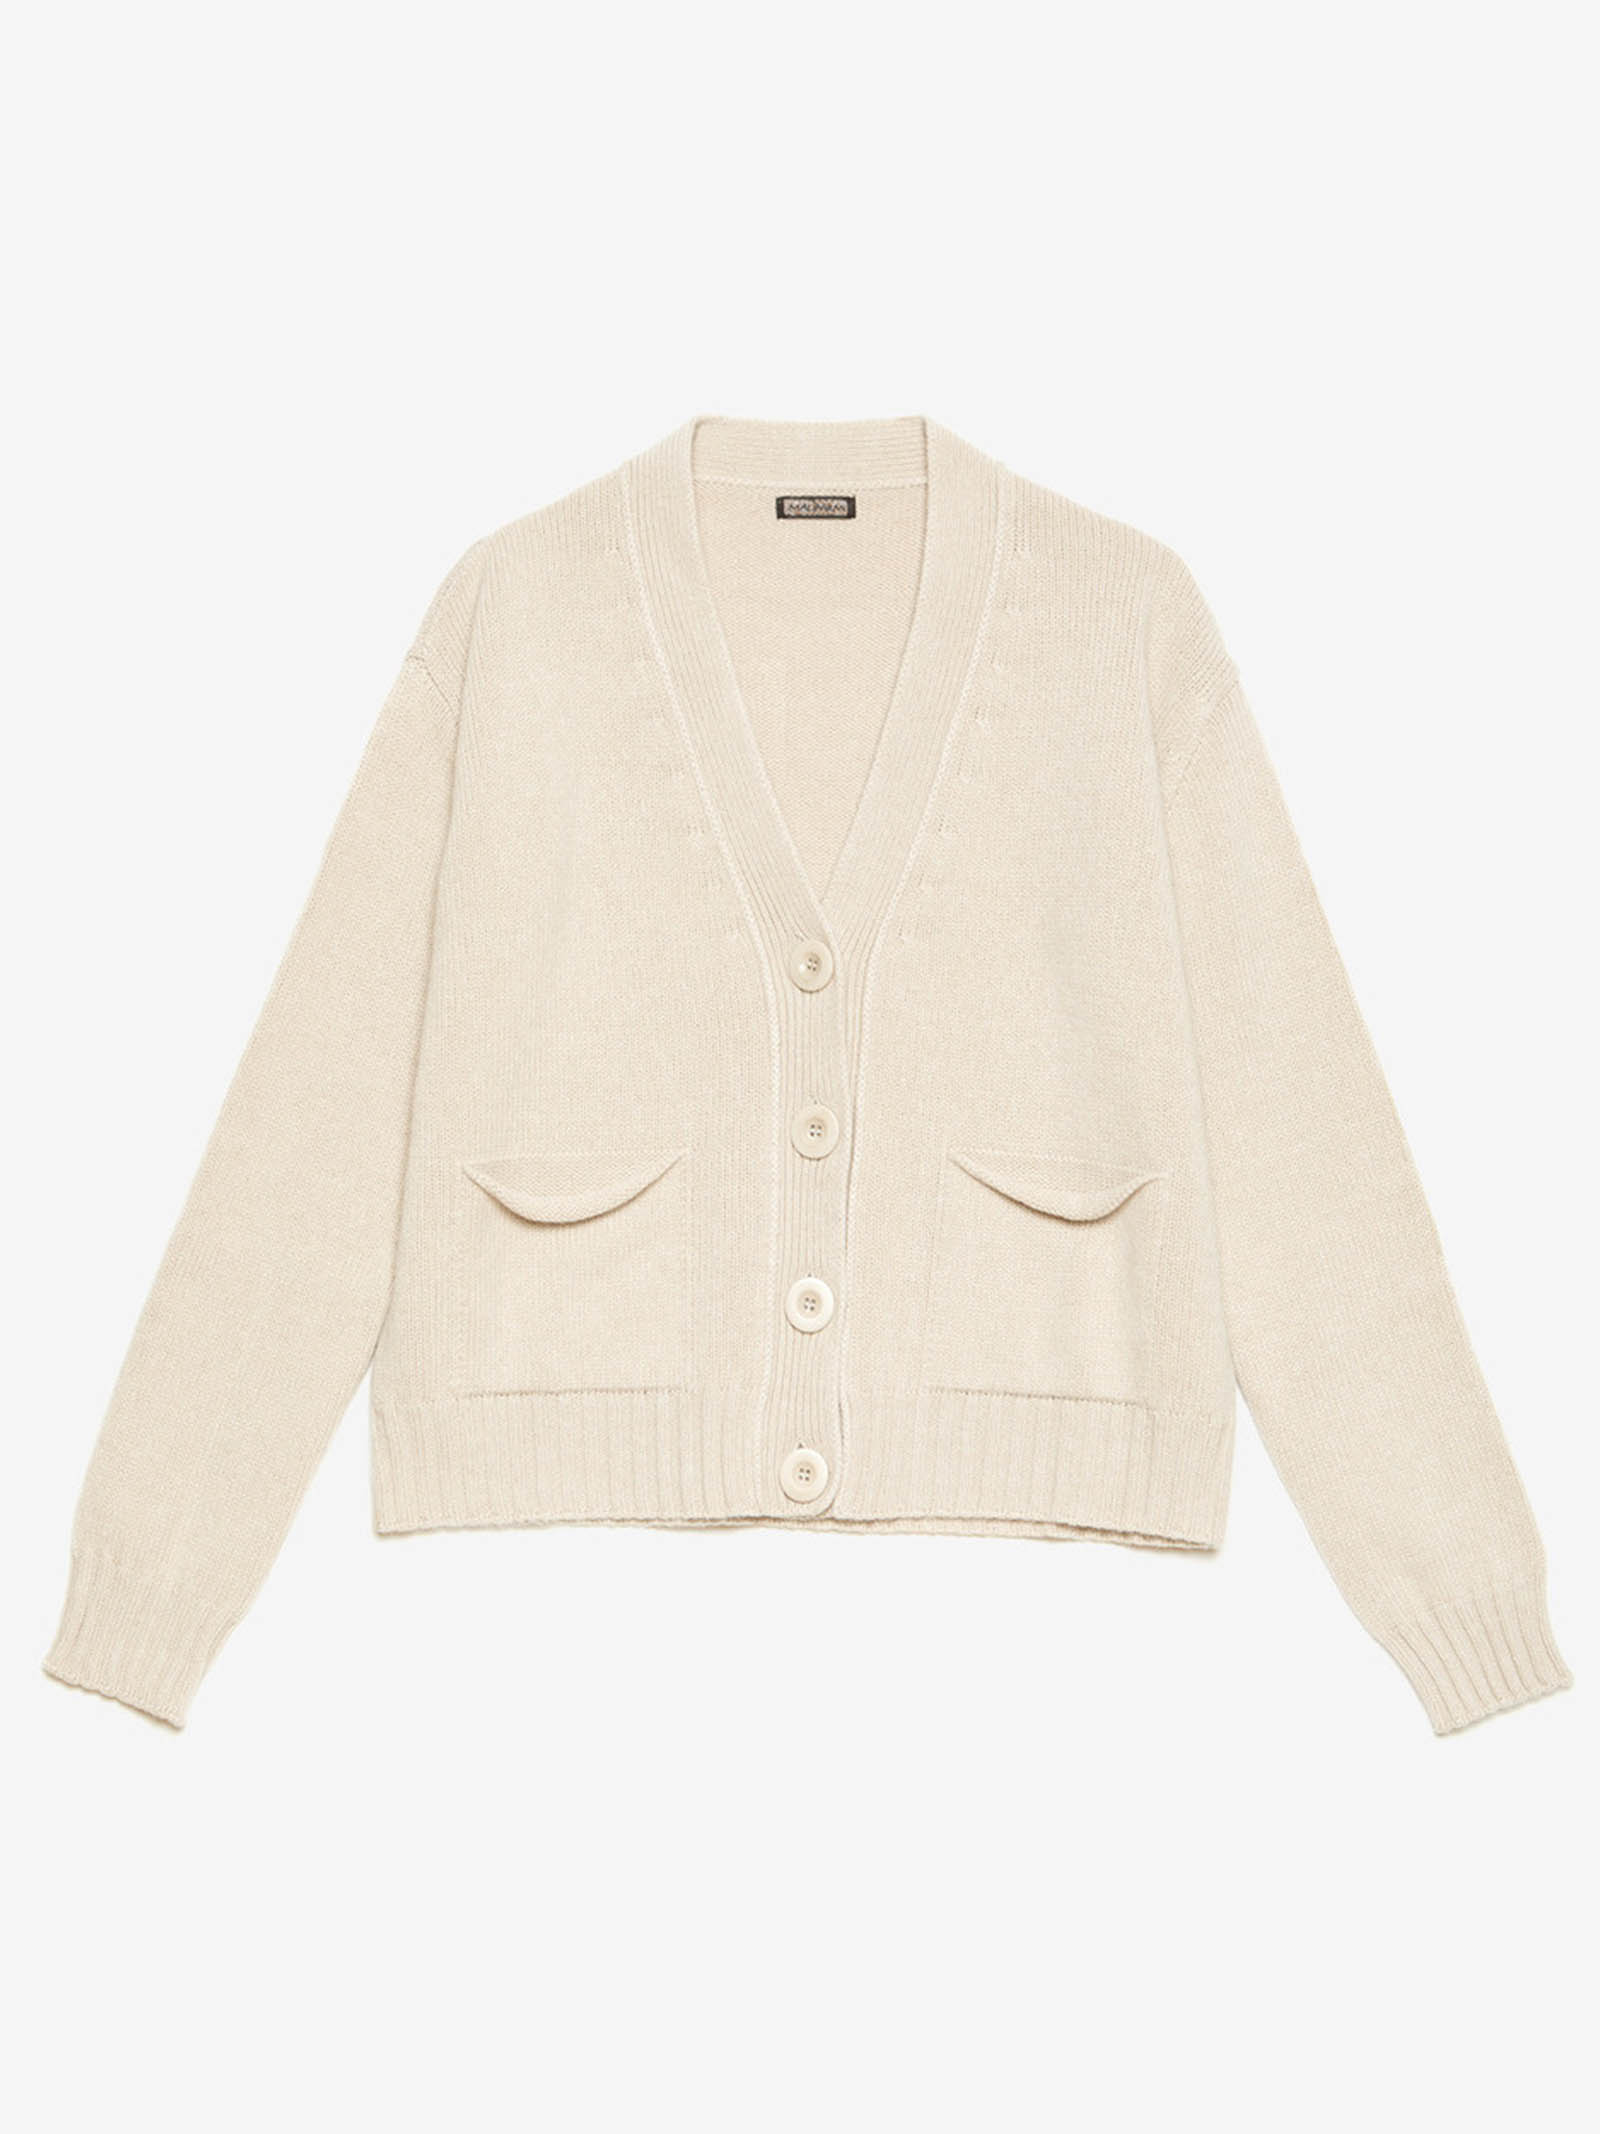 Women's Clothing Mixed Cashmere Cardigan in Ivory with Matching Buttons  Maliparmi   Knitwear   JN35537431510003